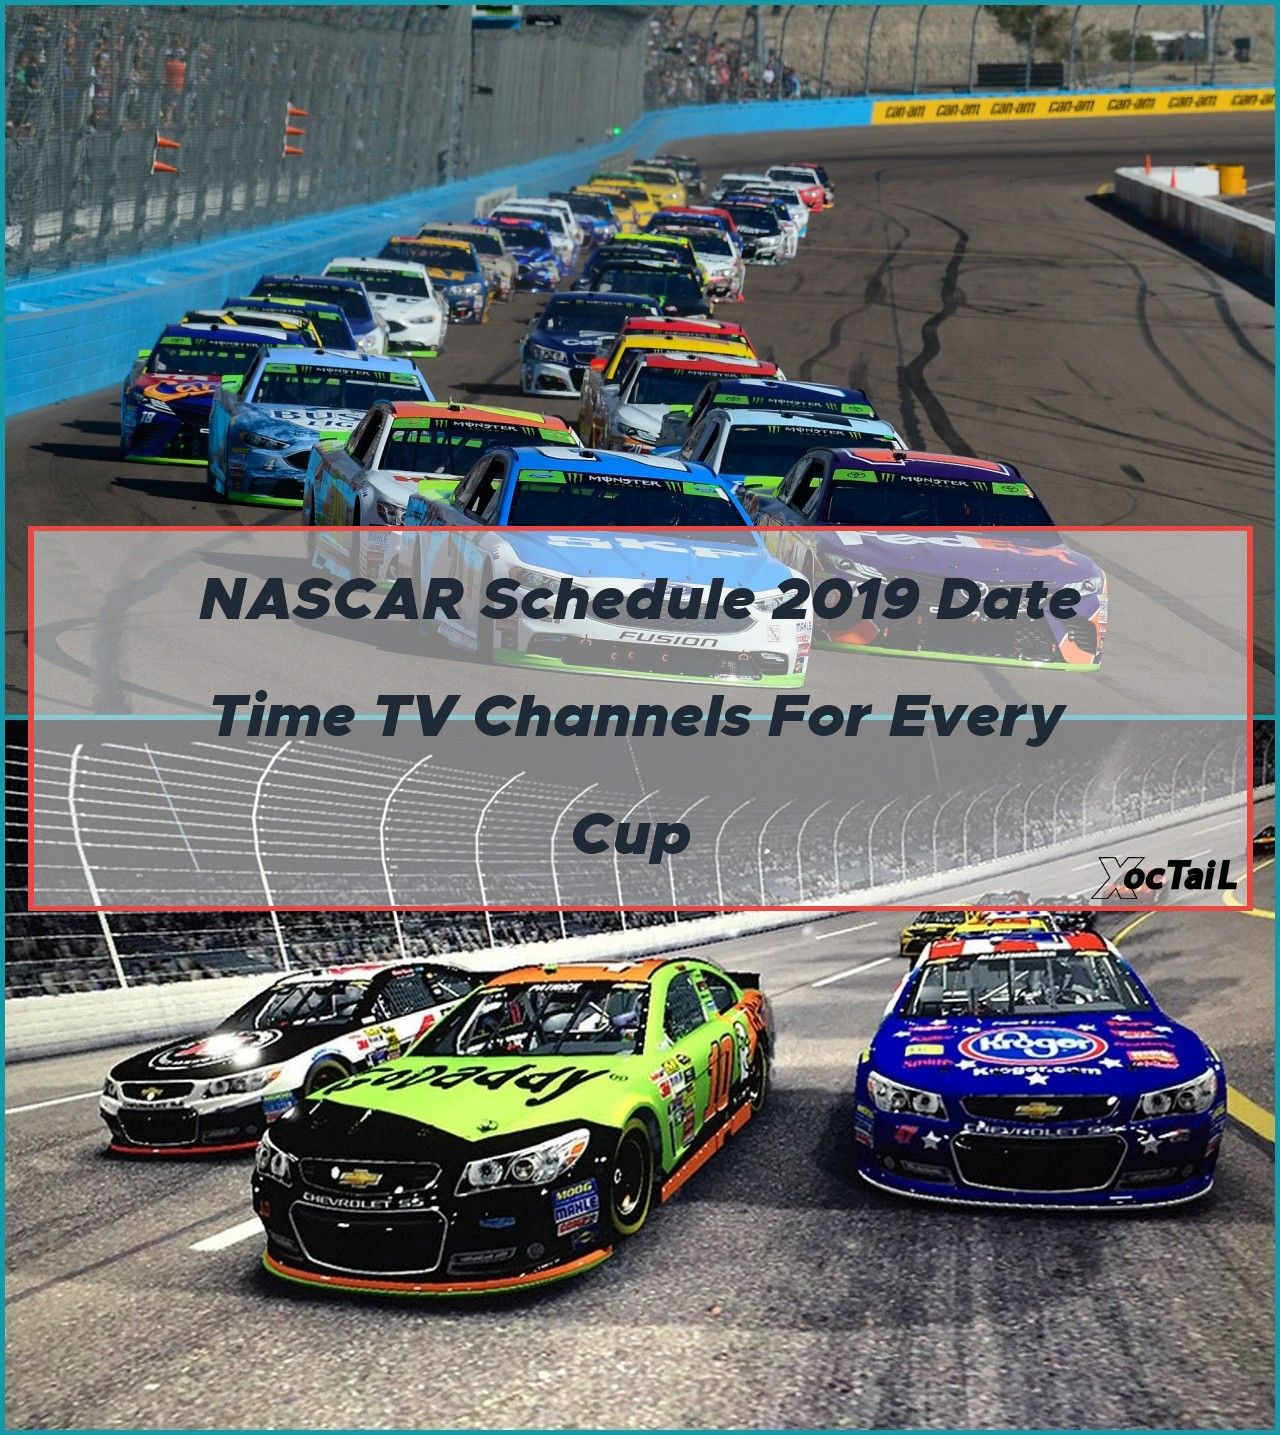 NASCAR schedule 2019 Date time TV channels for every Cup